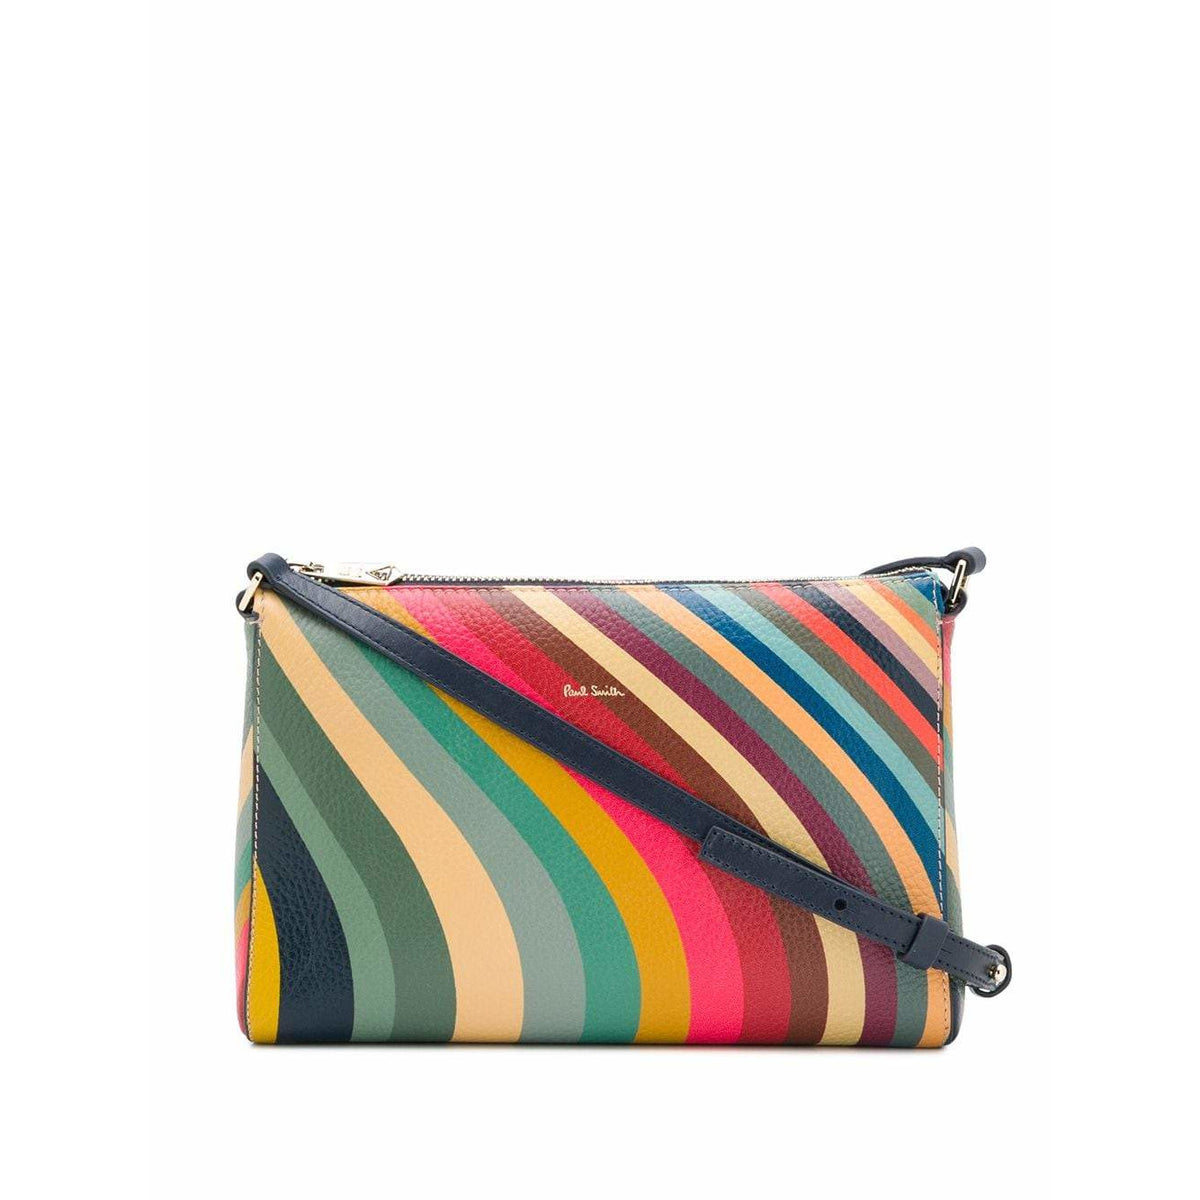 PAUL SMITH SWIRL ZIP TOP CROSSBODY BAG